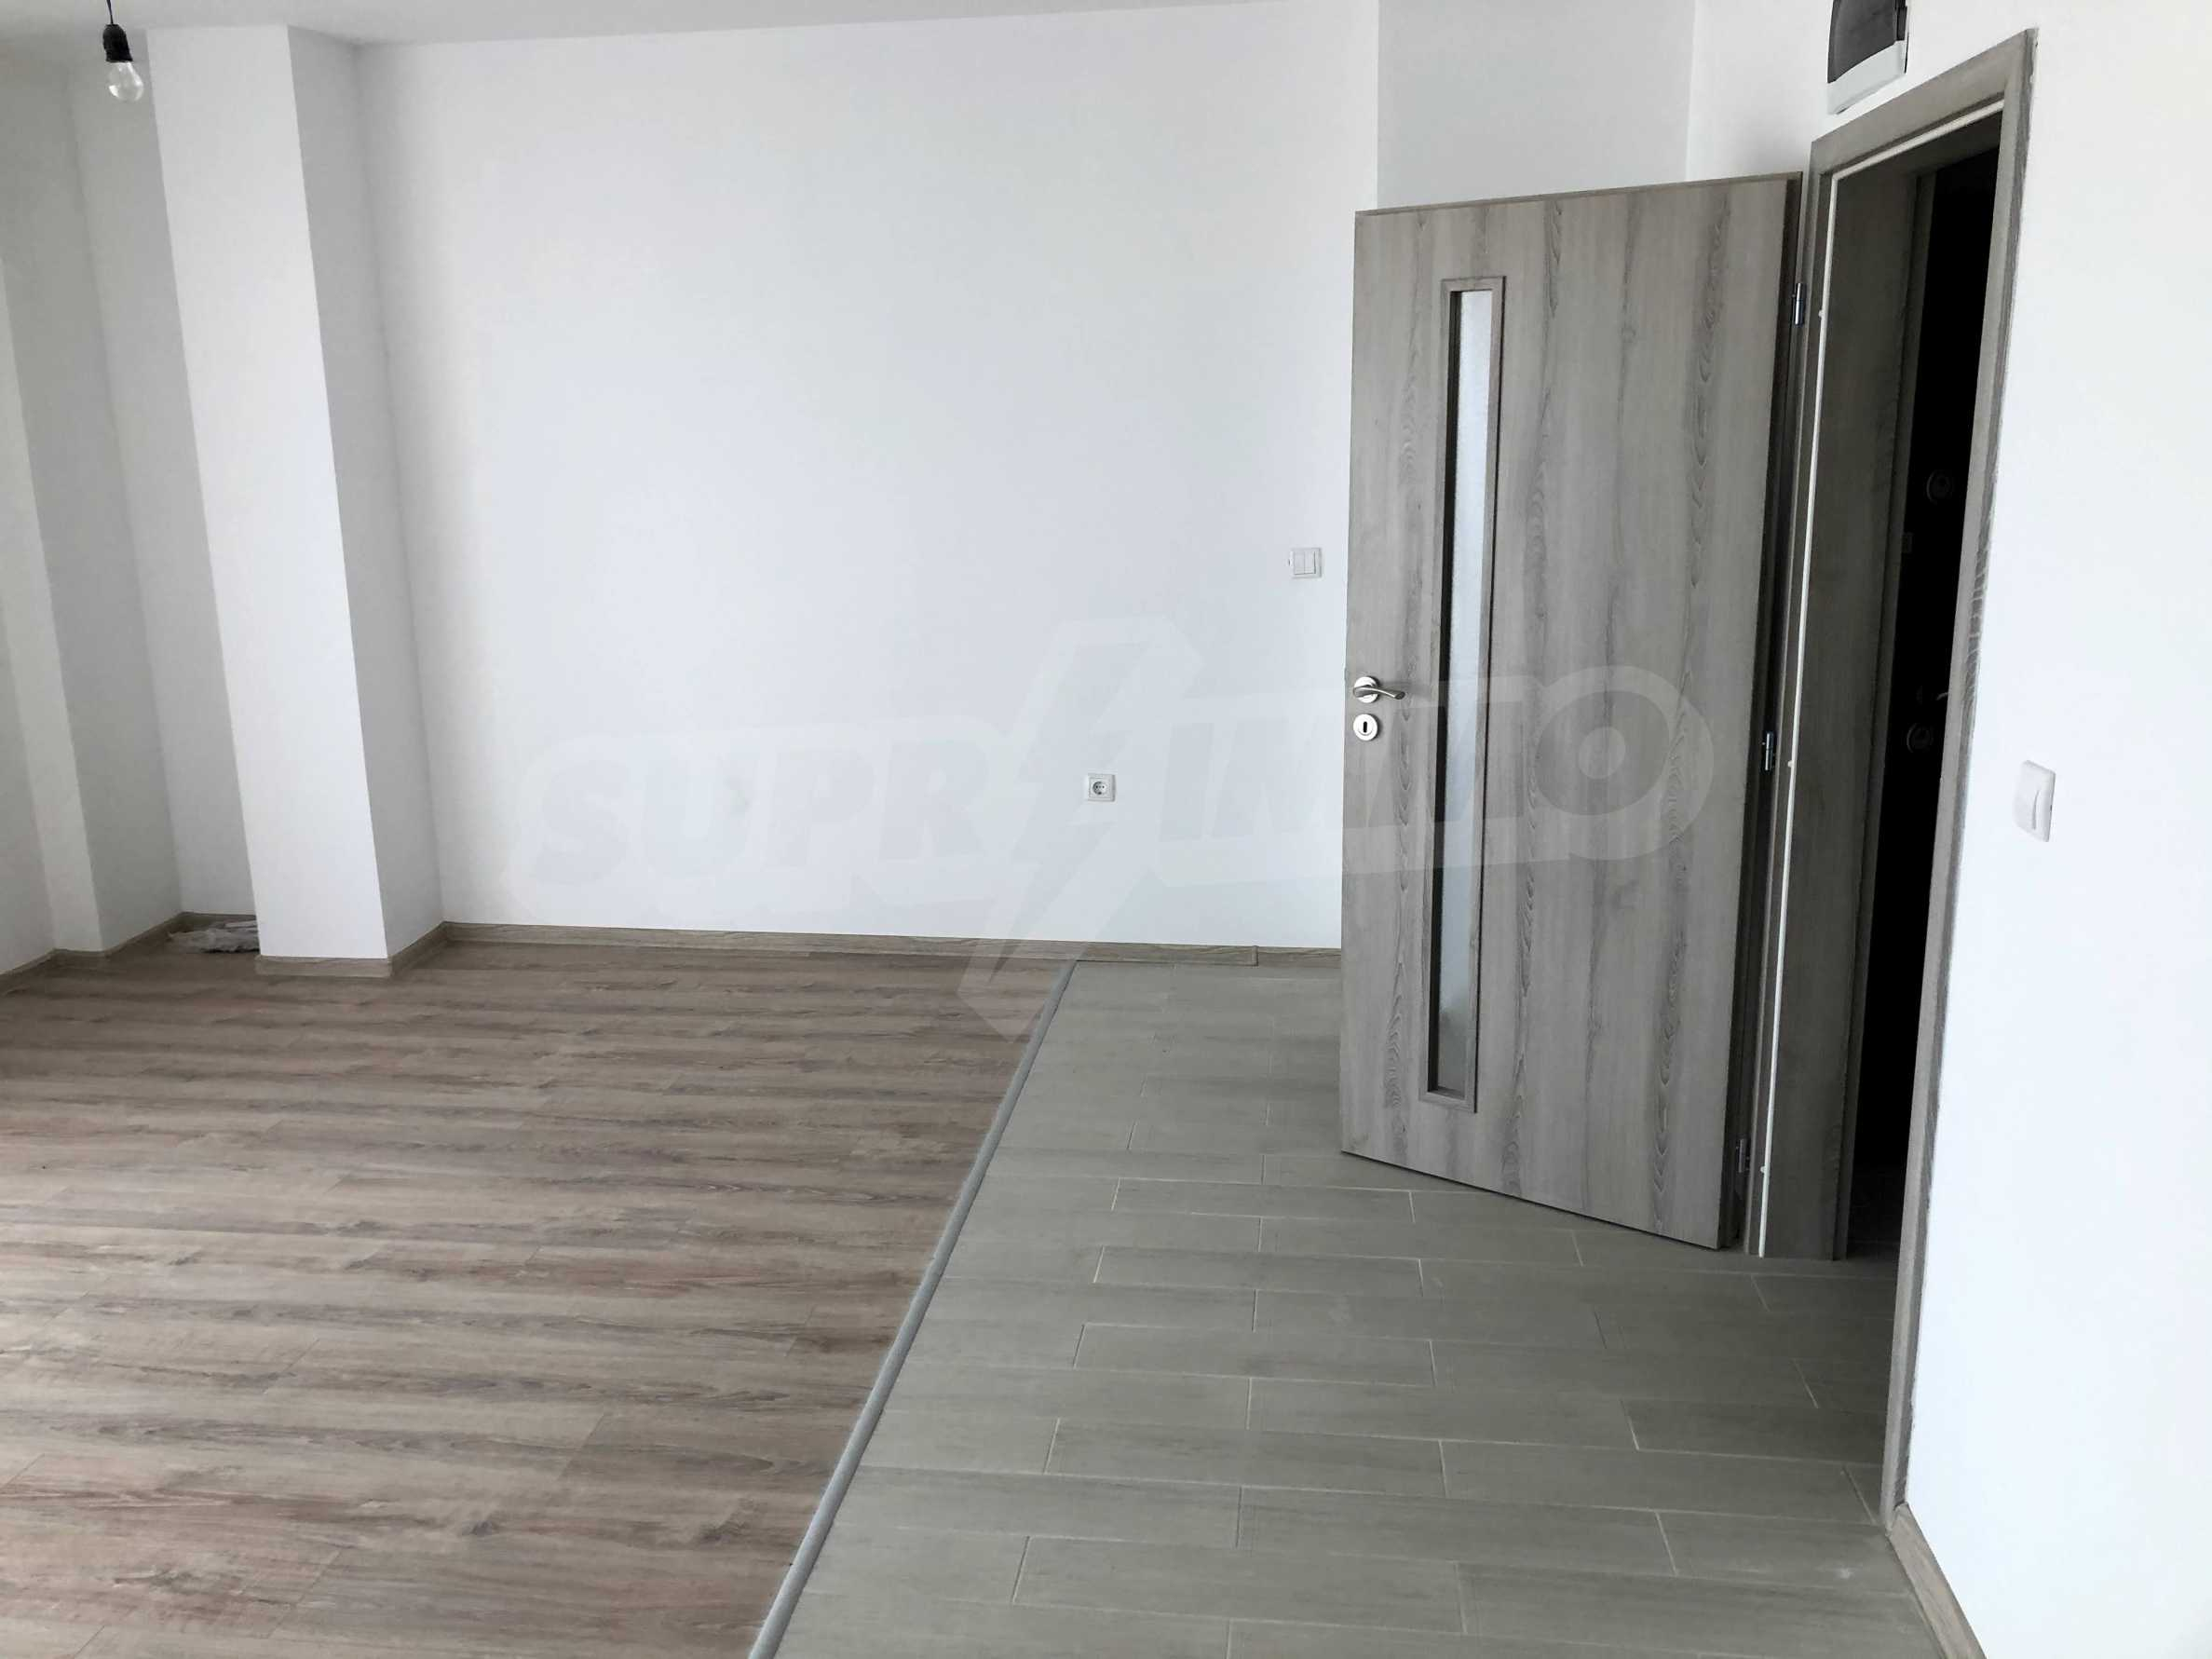 Apartment The Center - turnkey property with sea view, in the center of Obzor 7